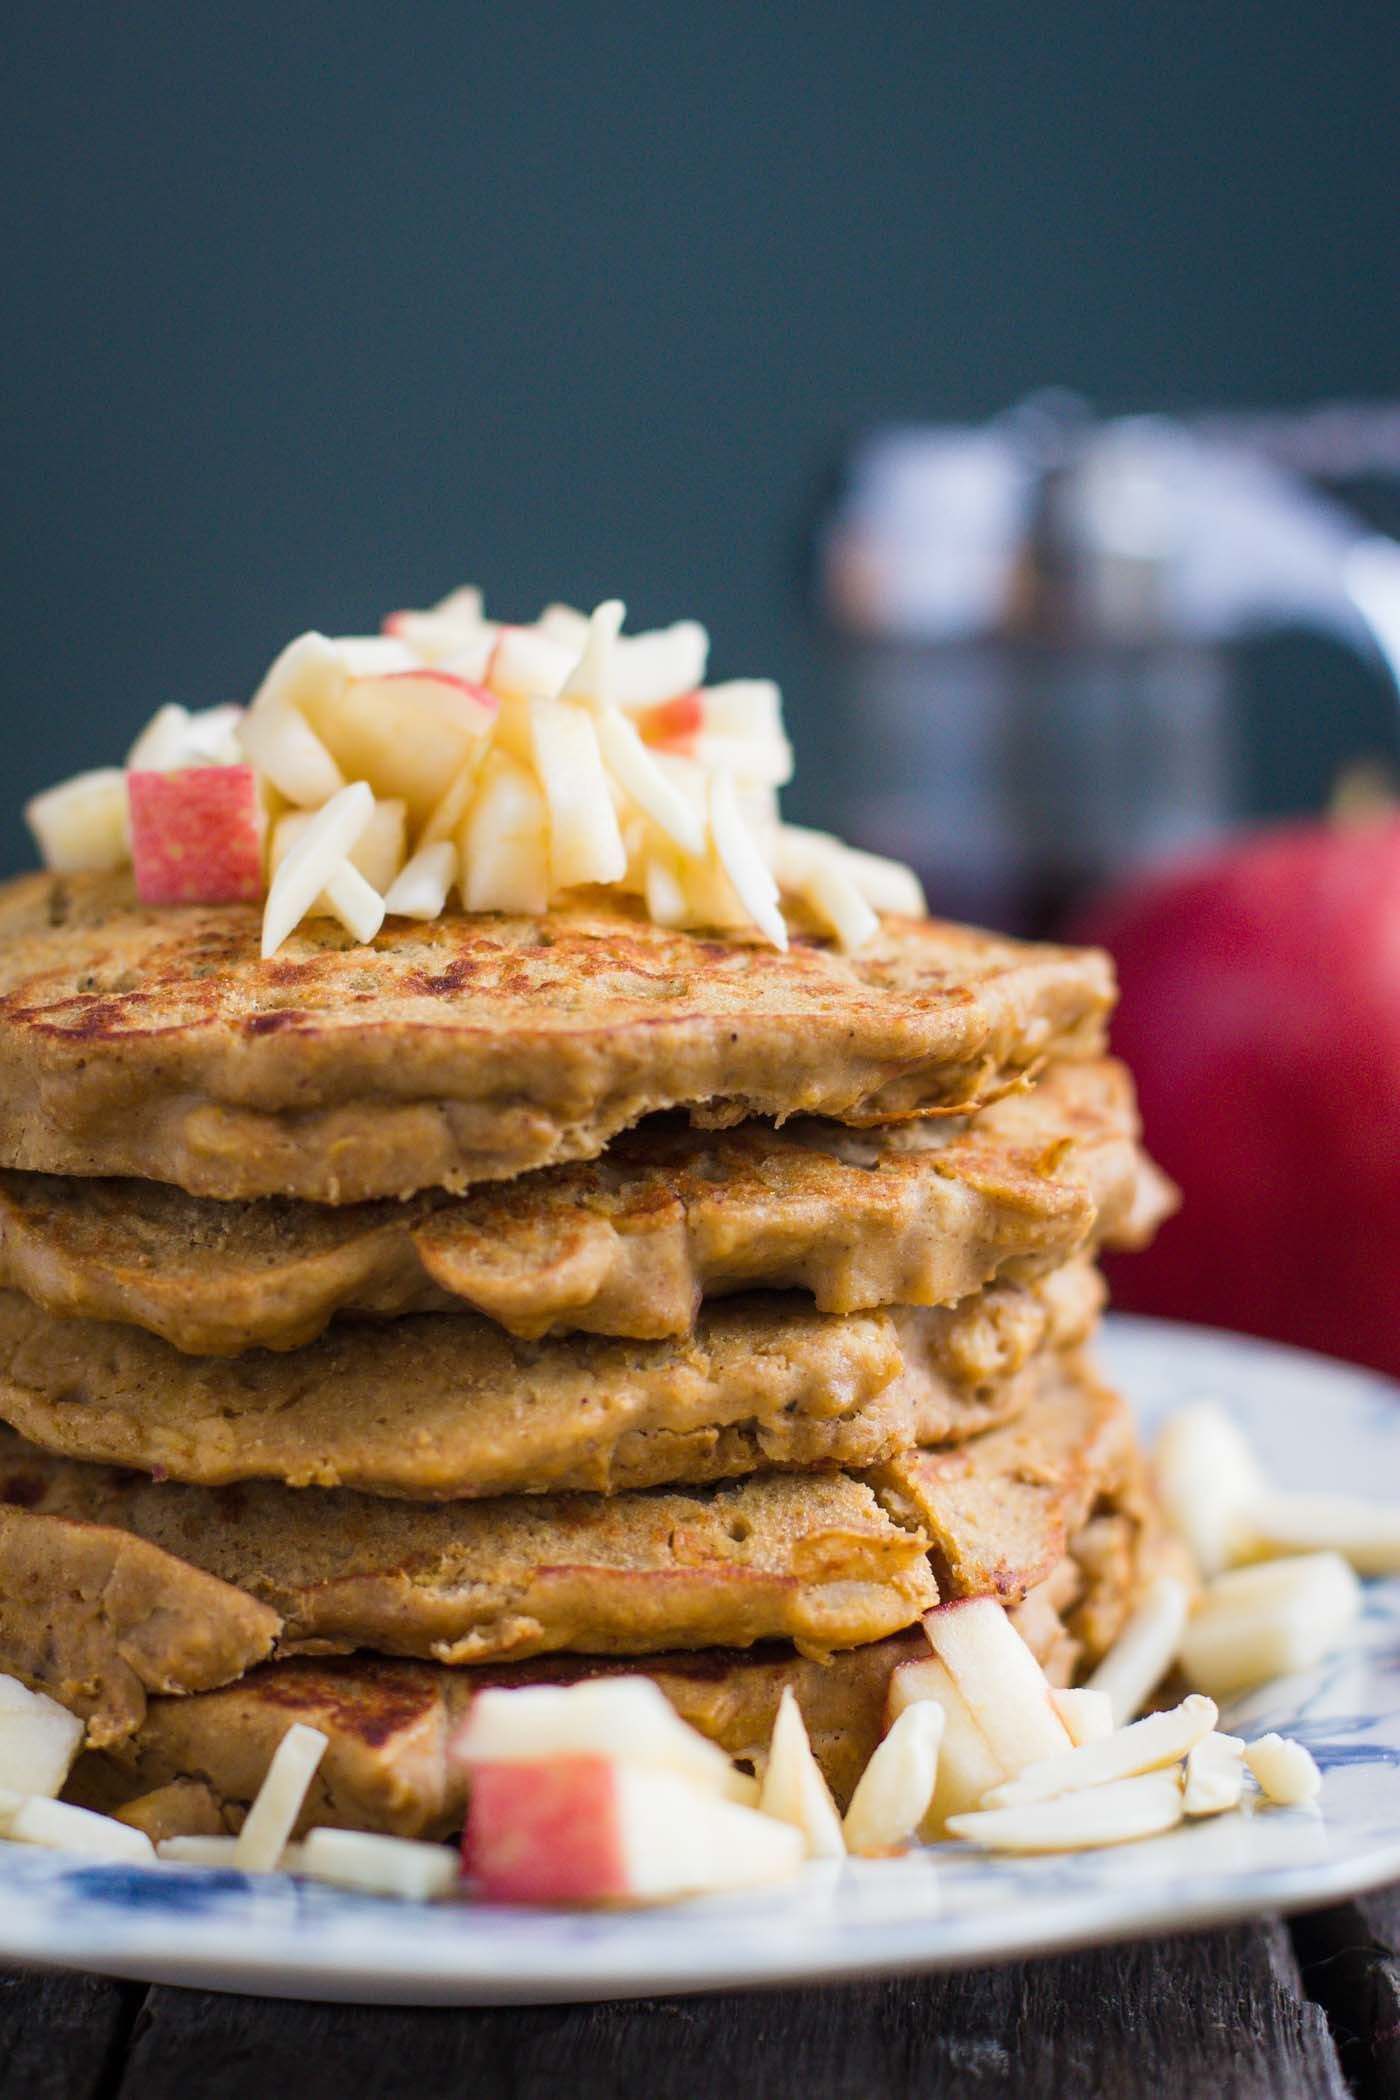 Apple Cinnamon Protein Pancakes- these are gluten-free, easy to throw together, and super yummy!